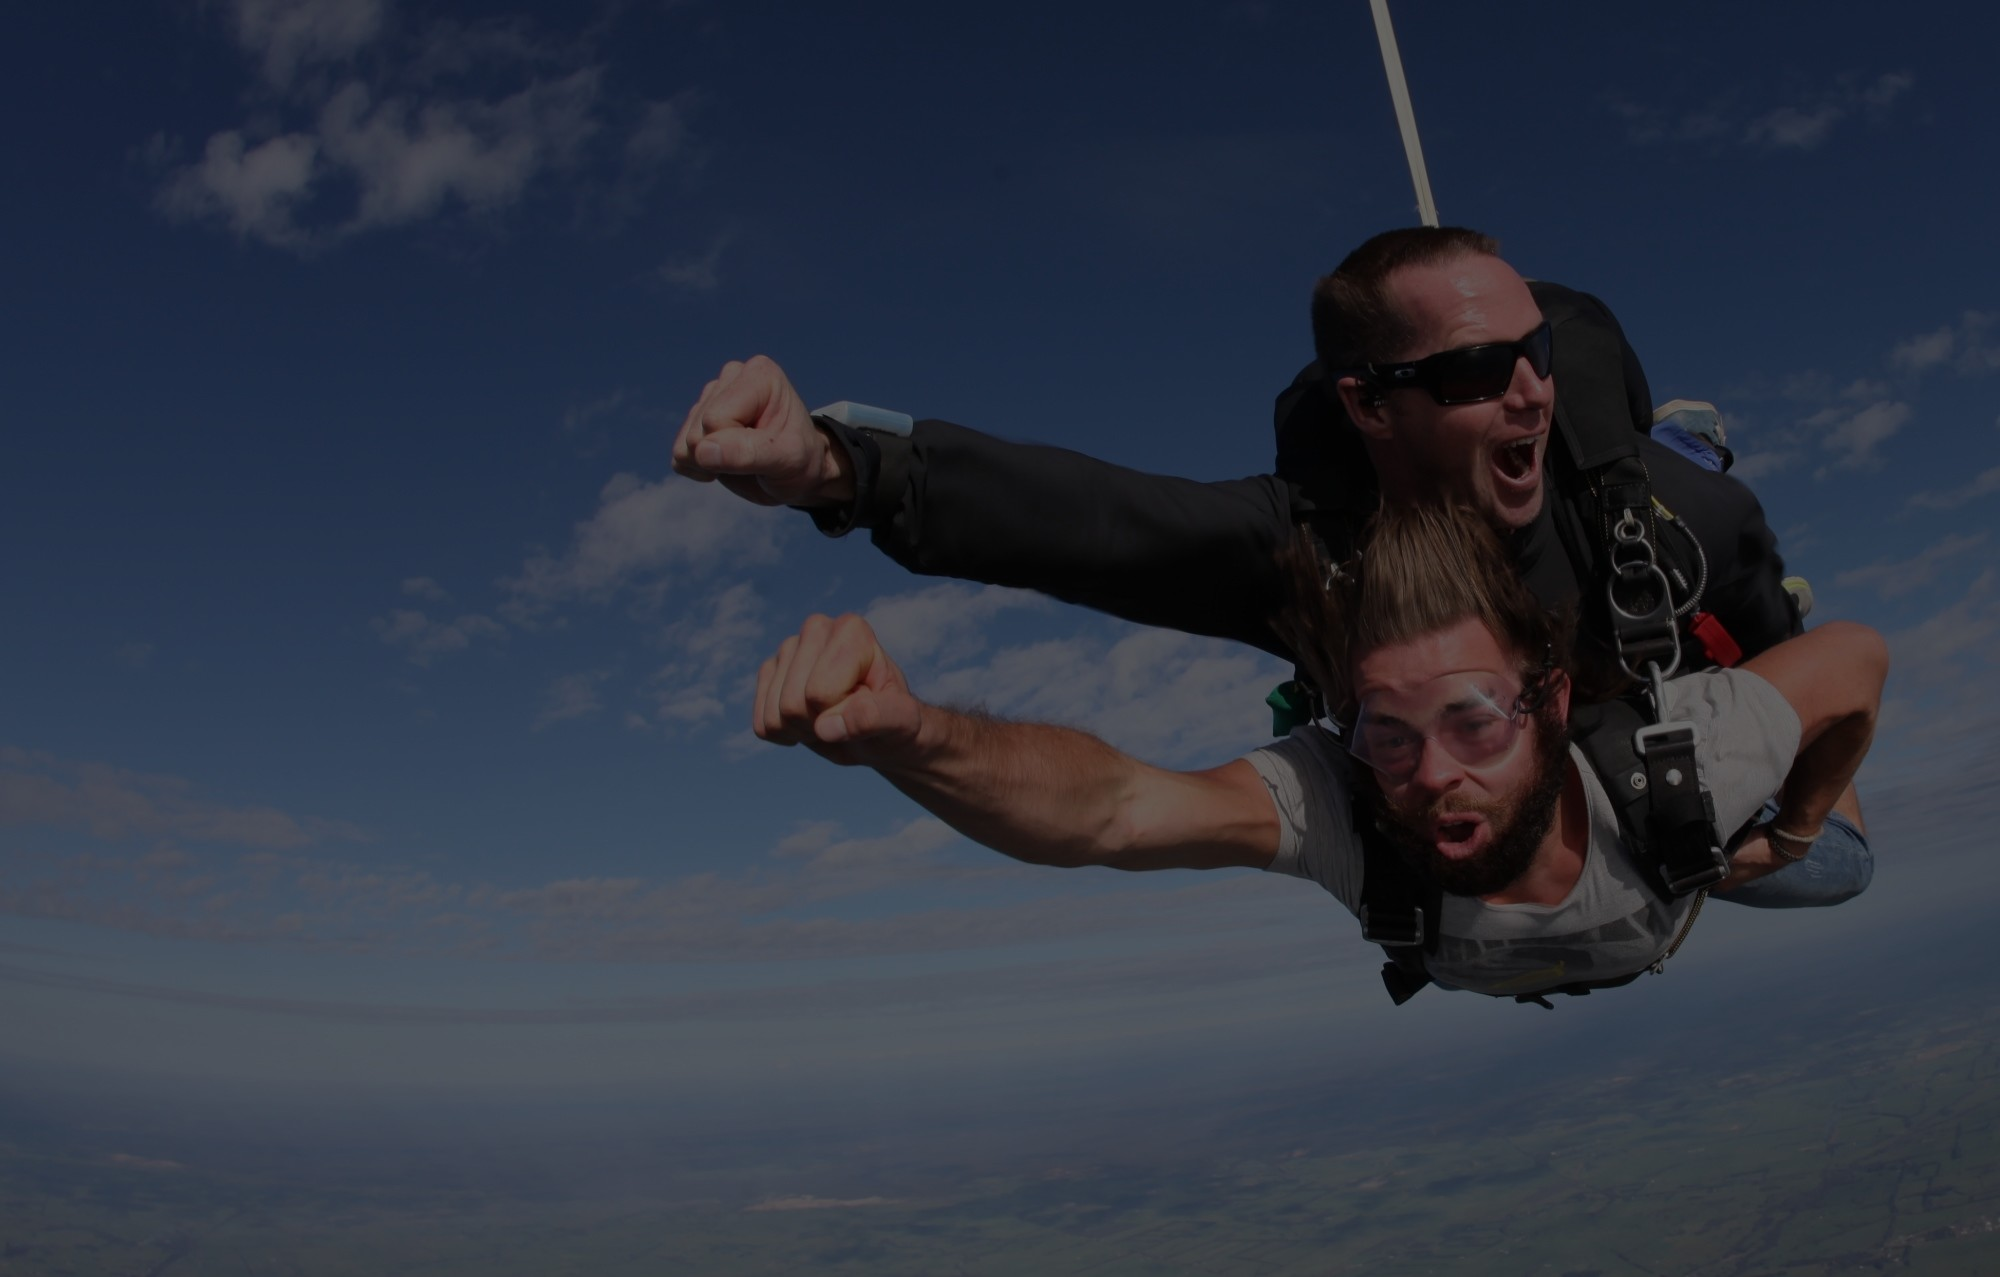 Drskydive